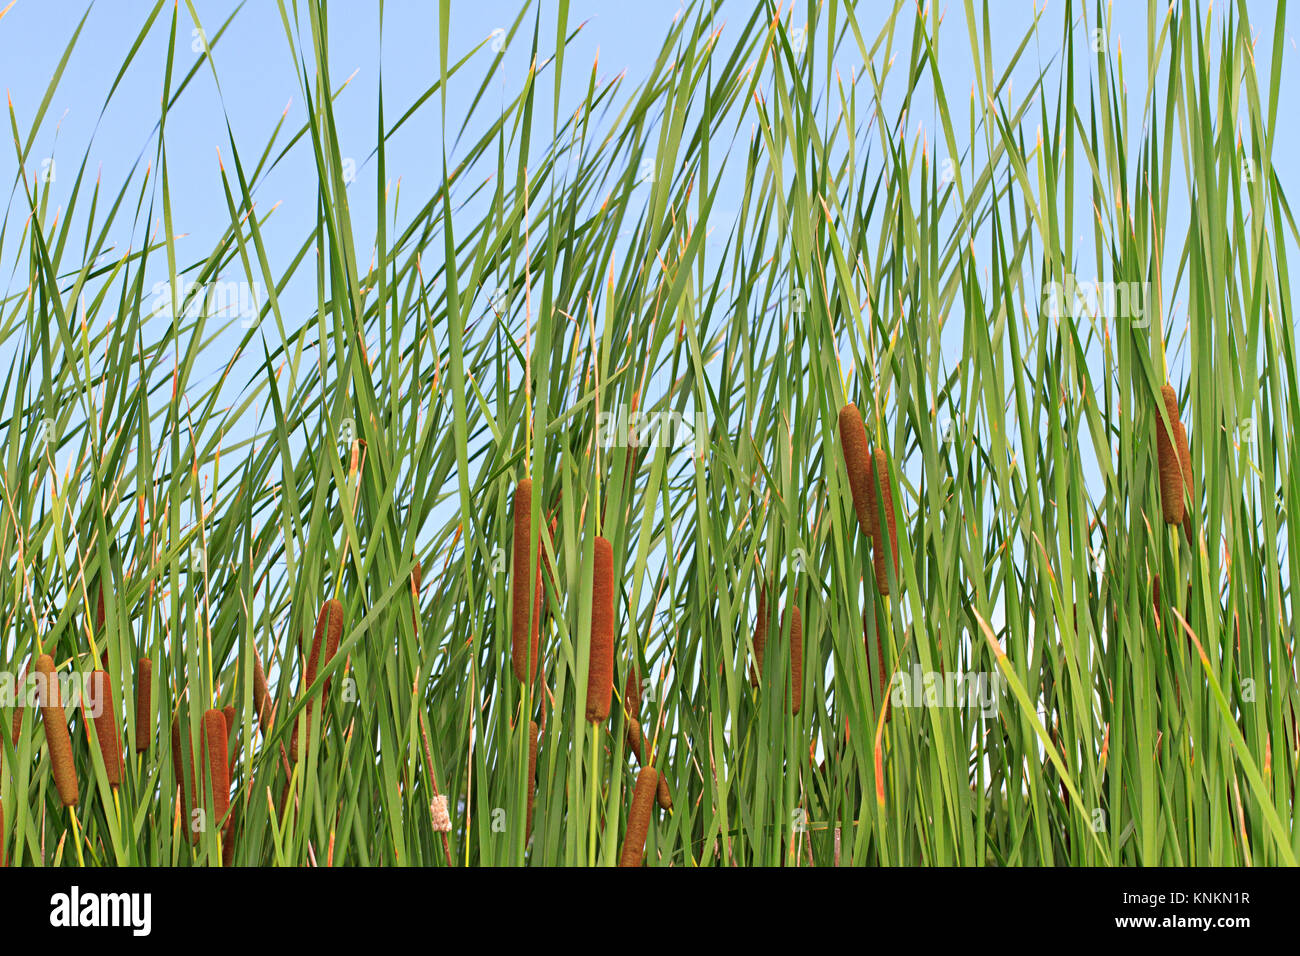 tall reeds stockfotos tall reeds bilder alamy. Black Bedroom Furniture Sets. Home Design Ideas